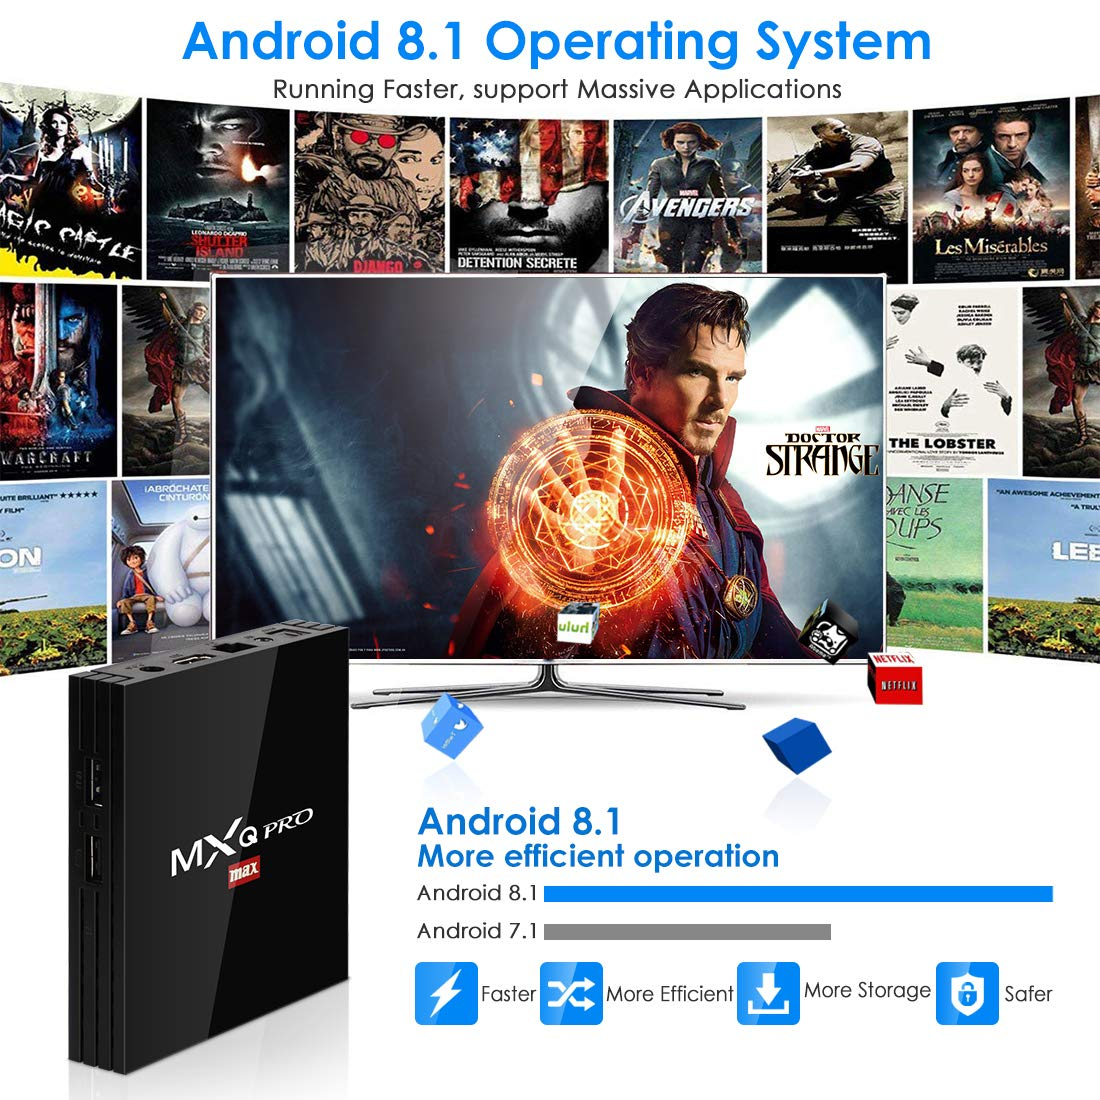 HDMI USB 3.0 BT 4.1 WiFi Media Player Superpow Smart TV Box Quad Core 4GB RAM+32GB ROM Android 8.1 TV Box Android Set-Top Box 4K*2K UHD H.265